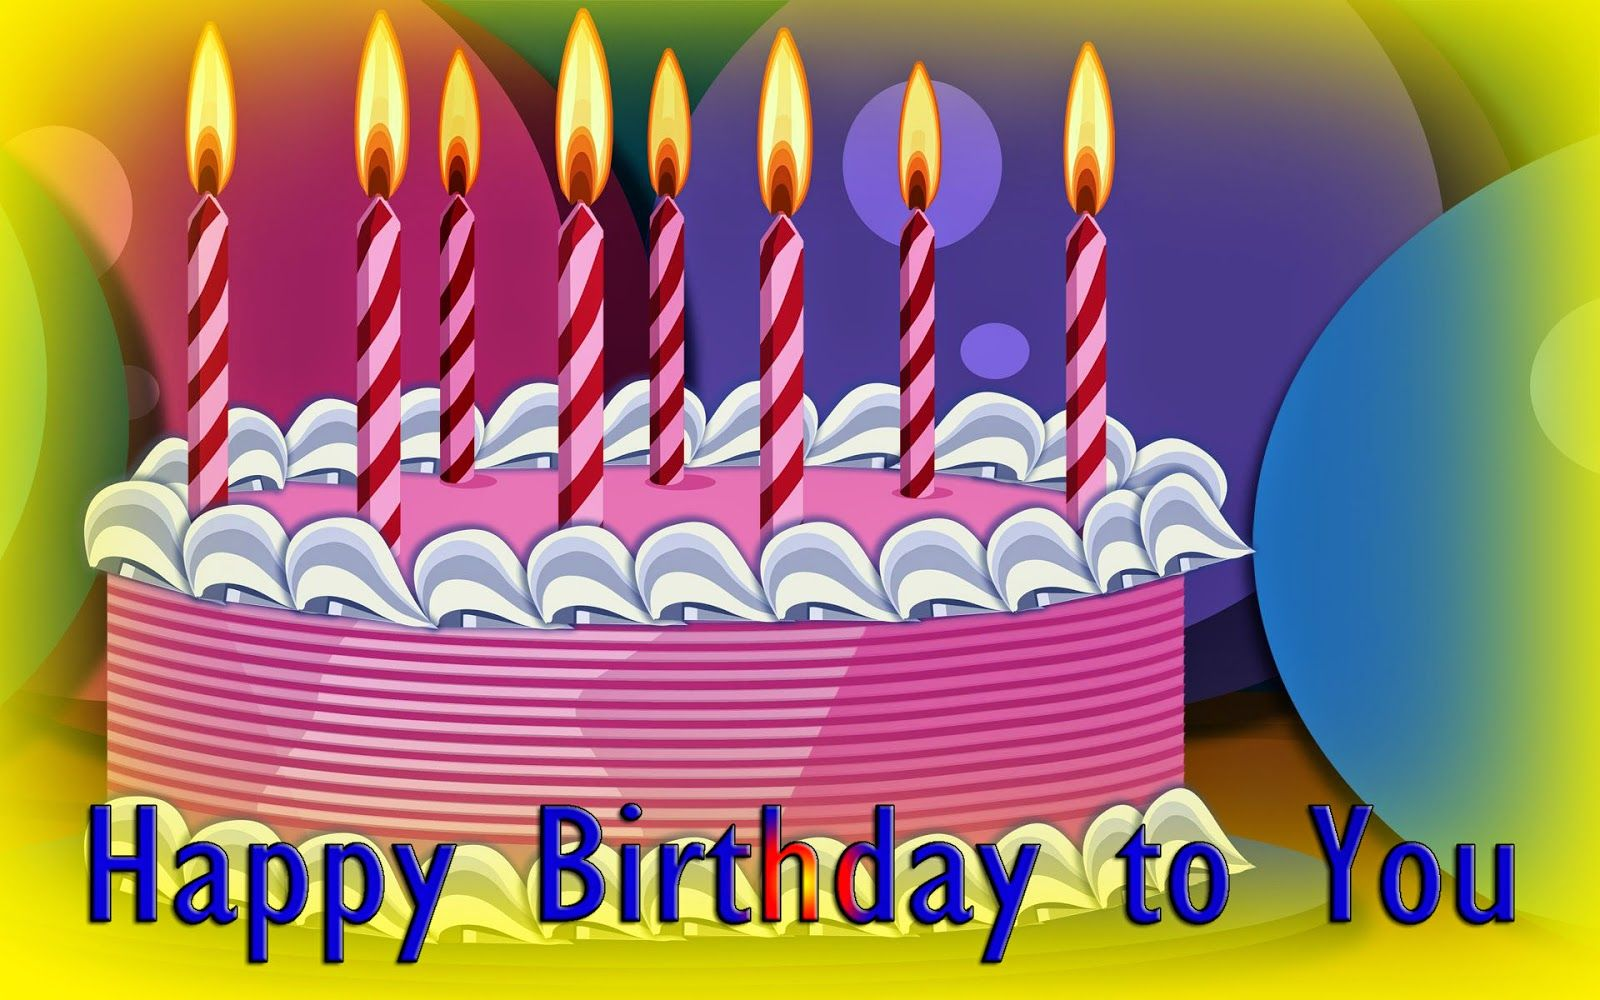 Happy Birthday Cake Hd In Heaven Quotes For Friends